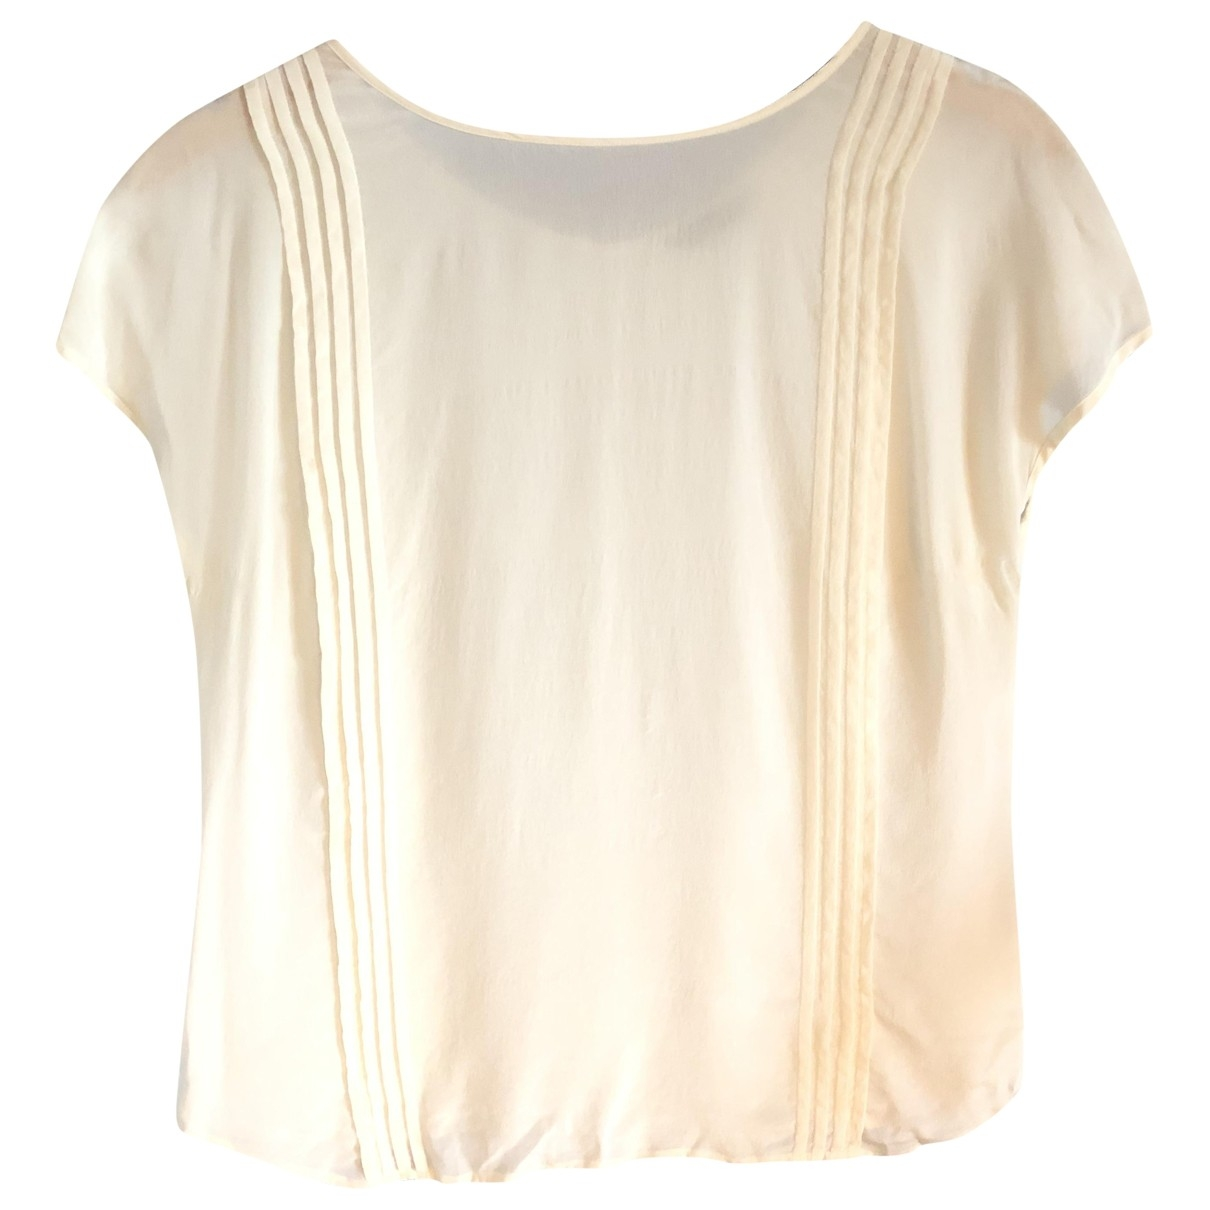 Massimo Dutti \N Ecru  top for Women 38 FR